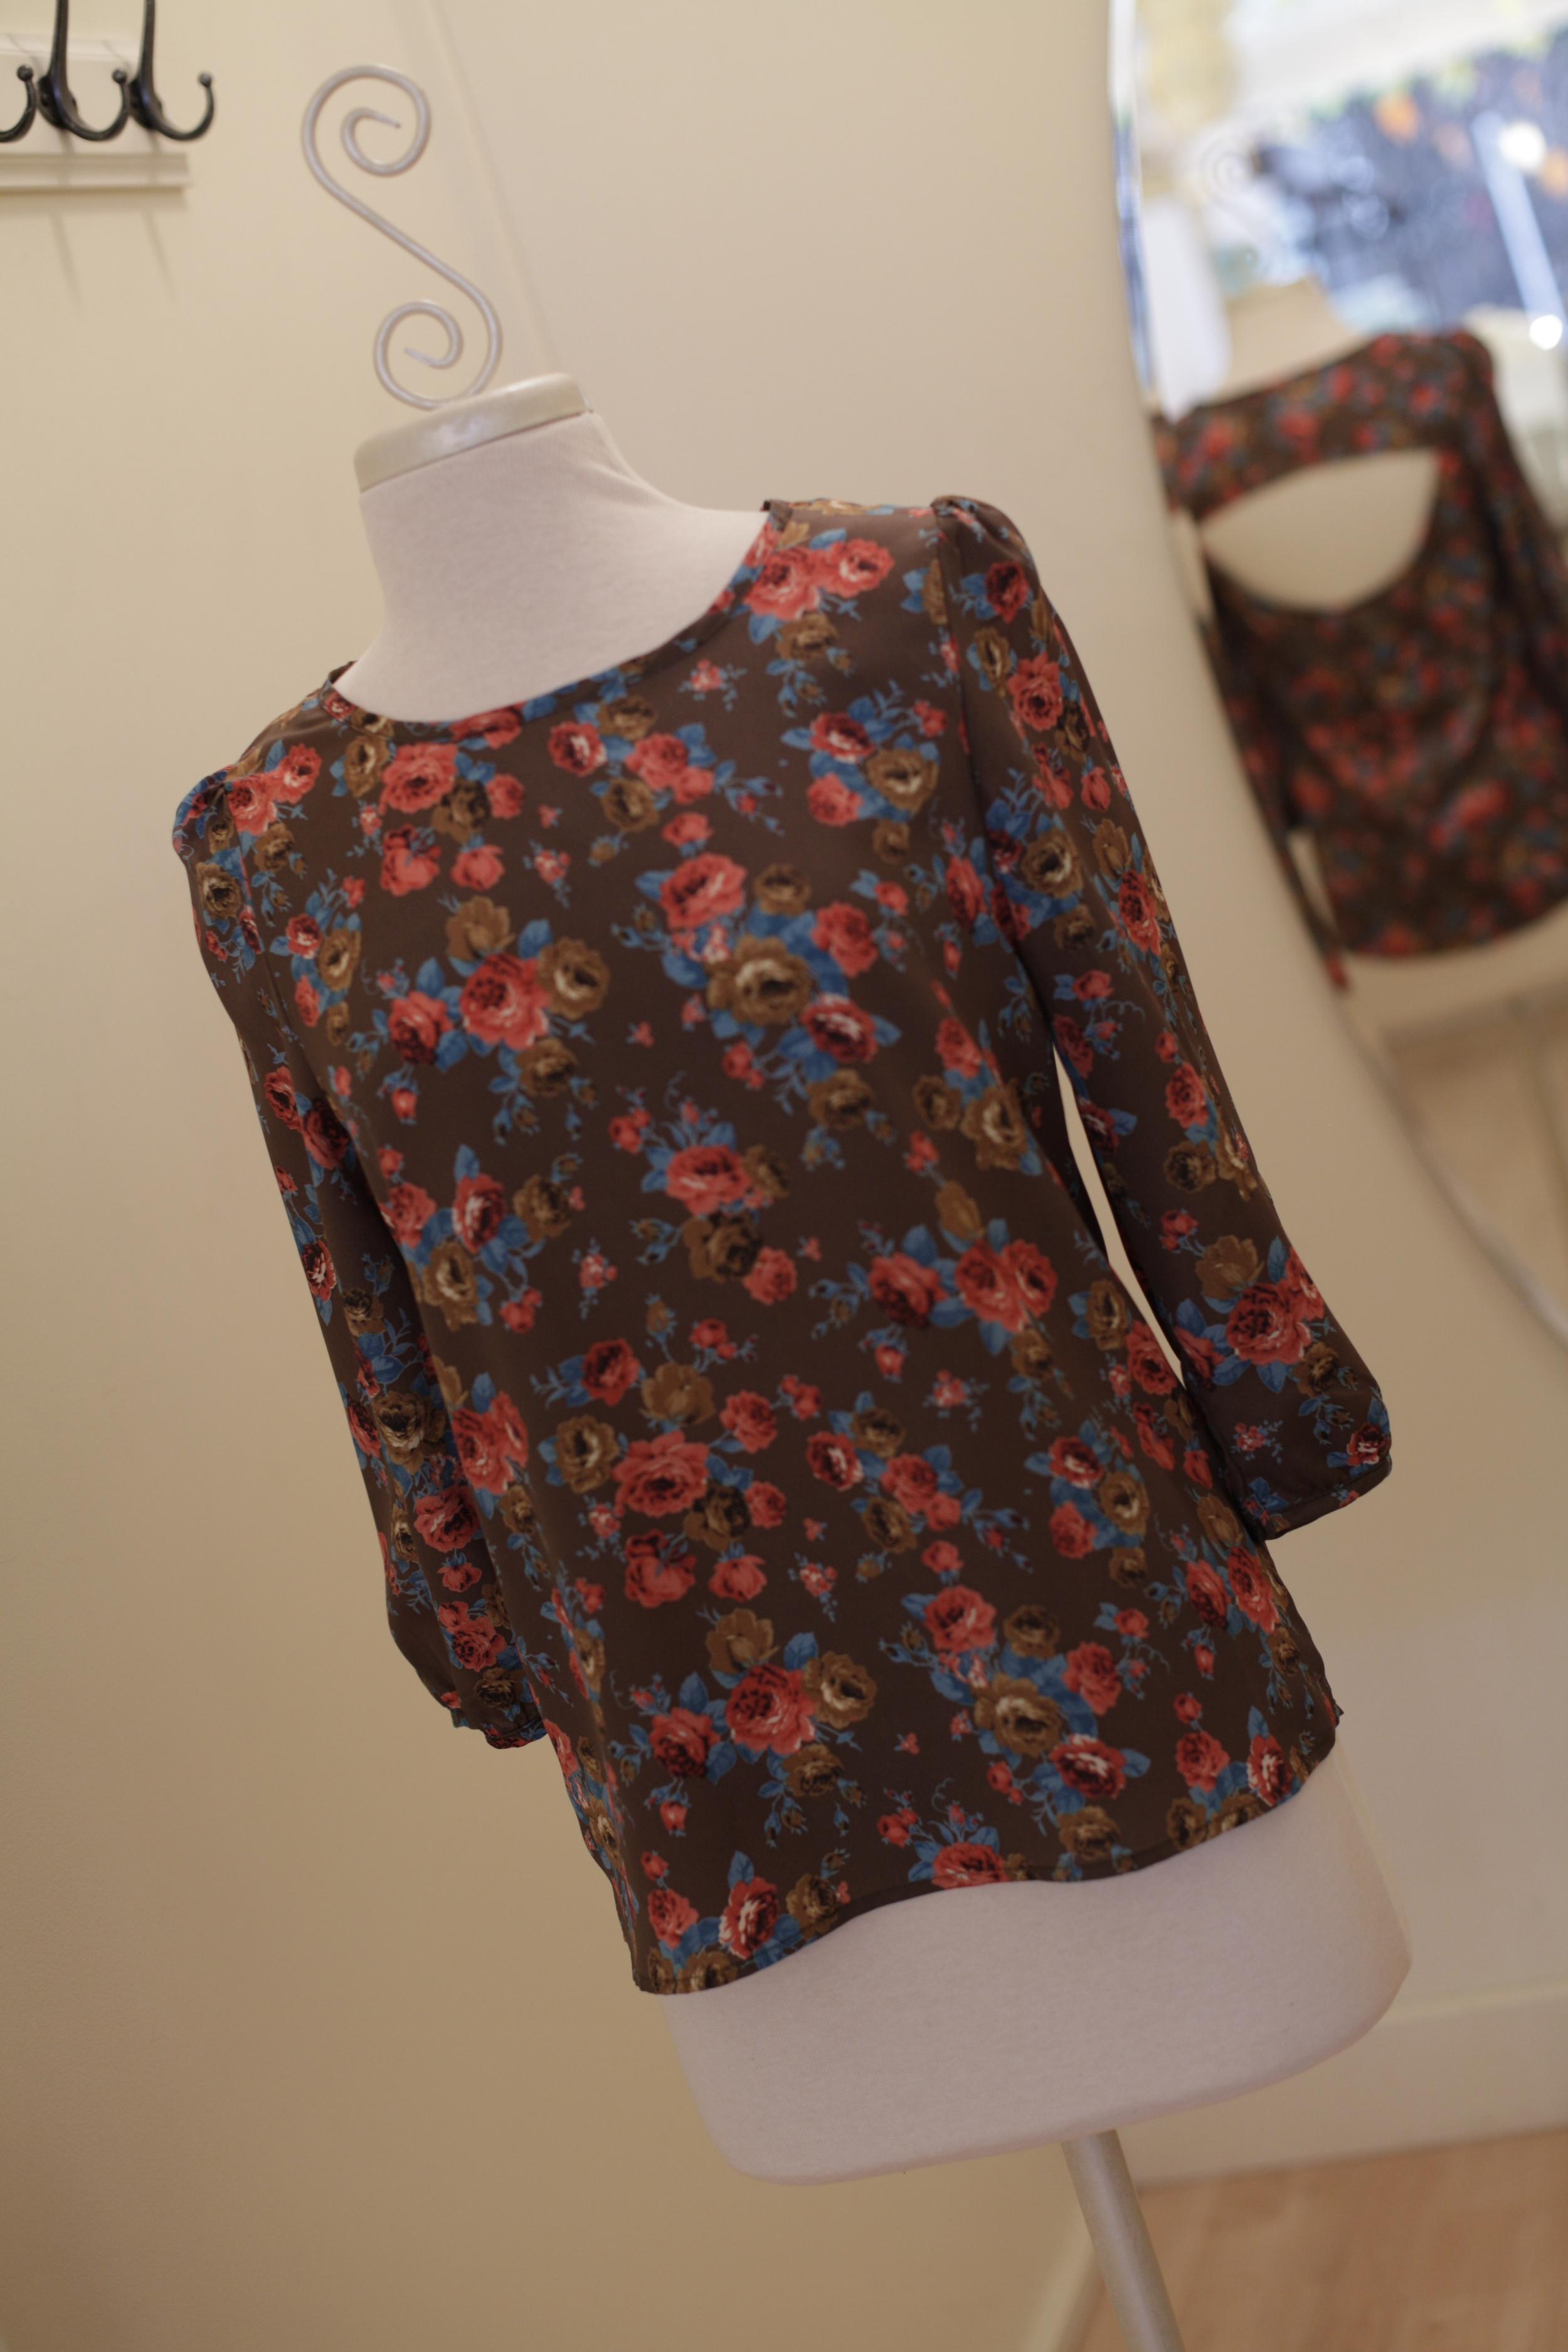 We are LOVING the vintage floral pattern of this beautiful blouse. Did you happen to notice the sexy cut-out back? What is not to love about this cutey?